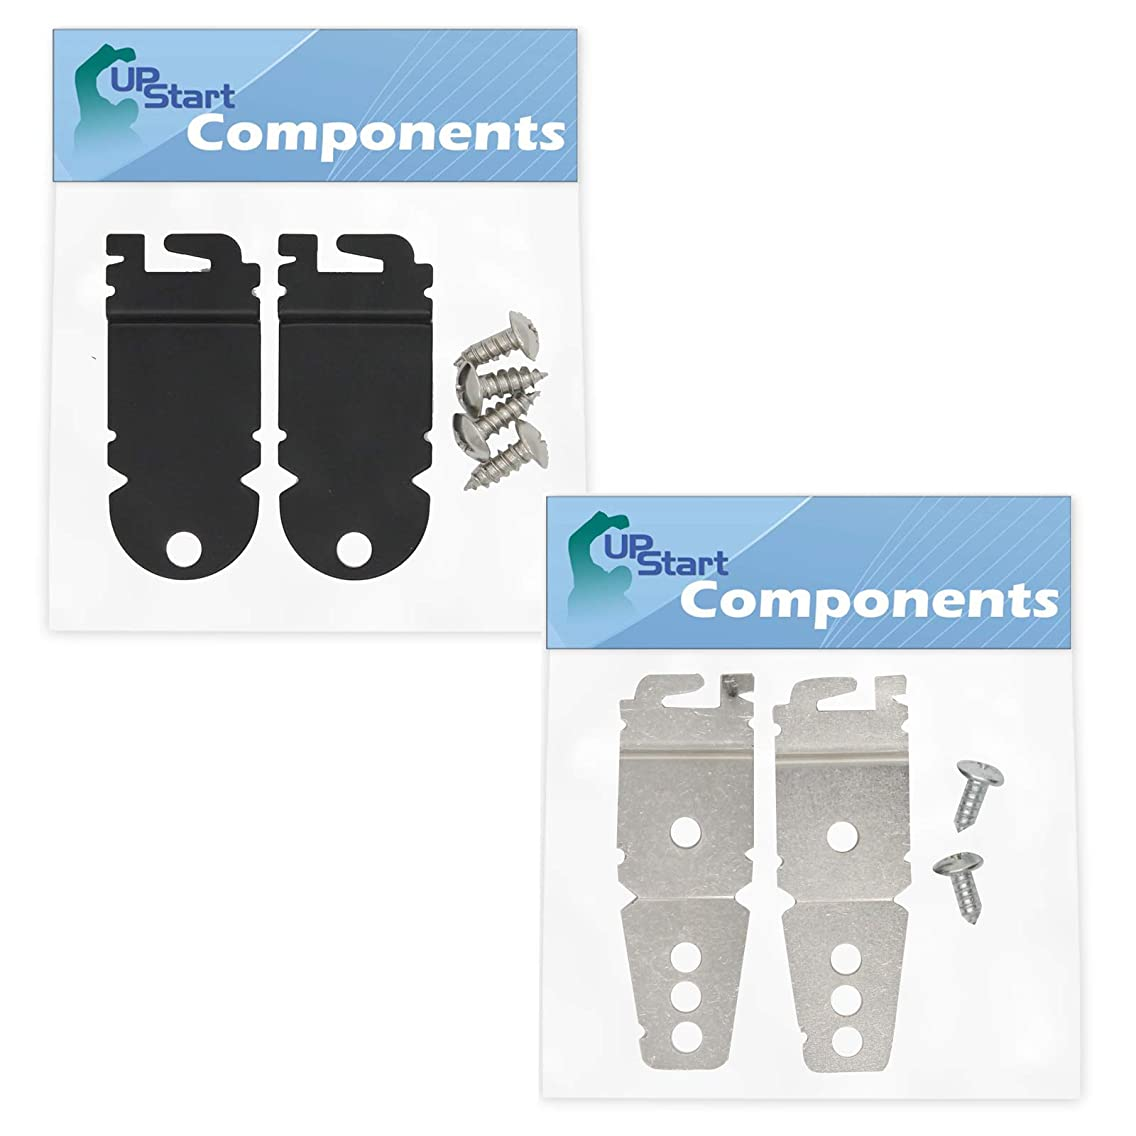 8212560 & 8269145 Mounting Bracket Replacement Kit With Screw Replacement for Kenmore/Sears 66513473K901 Dishwasher - Compatible with WP8269145 & 8212560 Undercounter Dishwasher Mounting Bracket